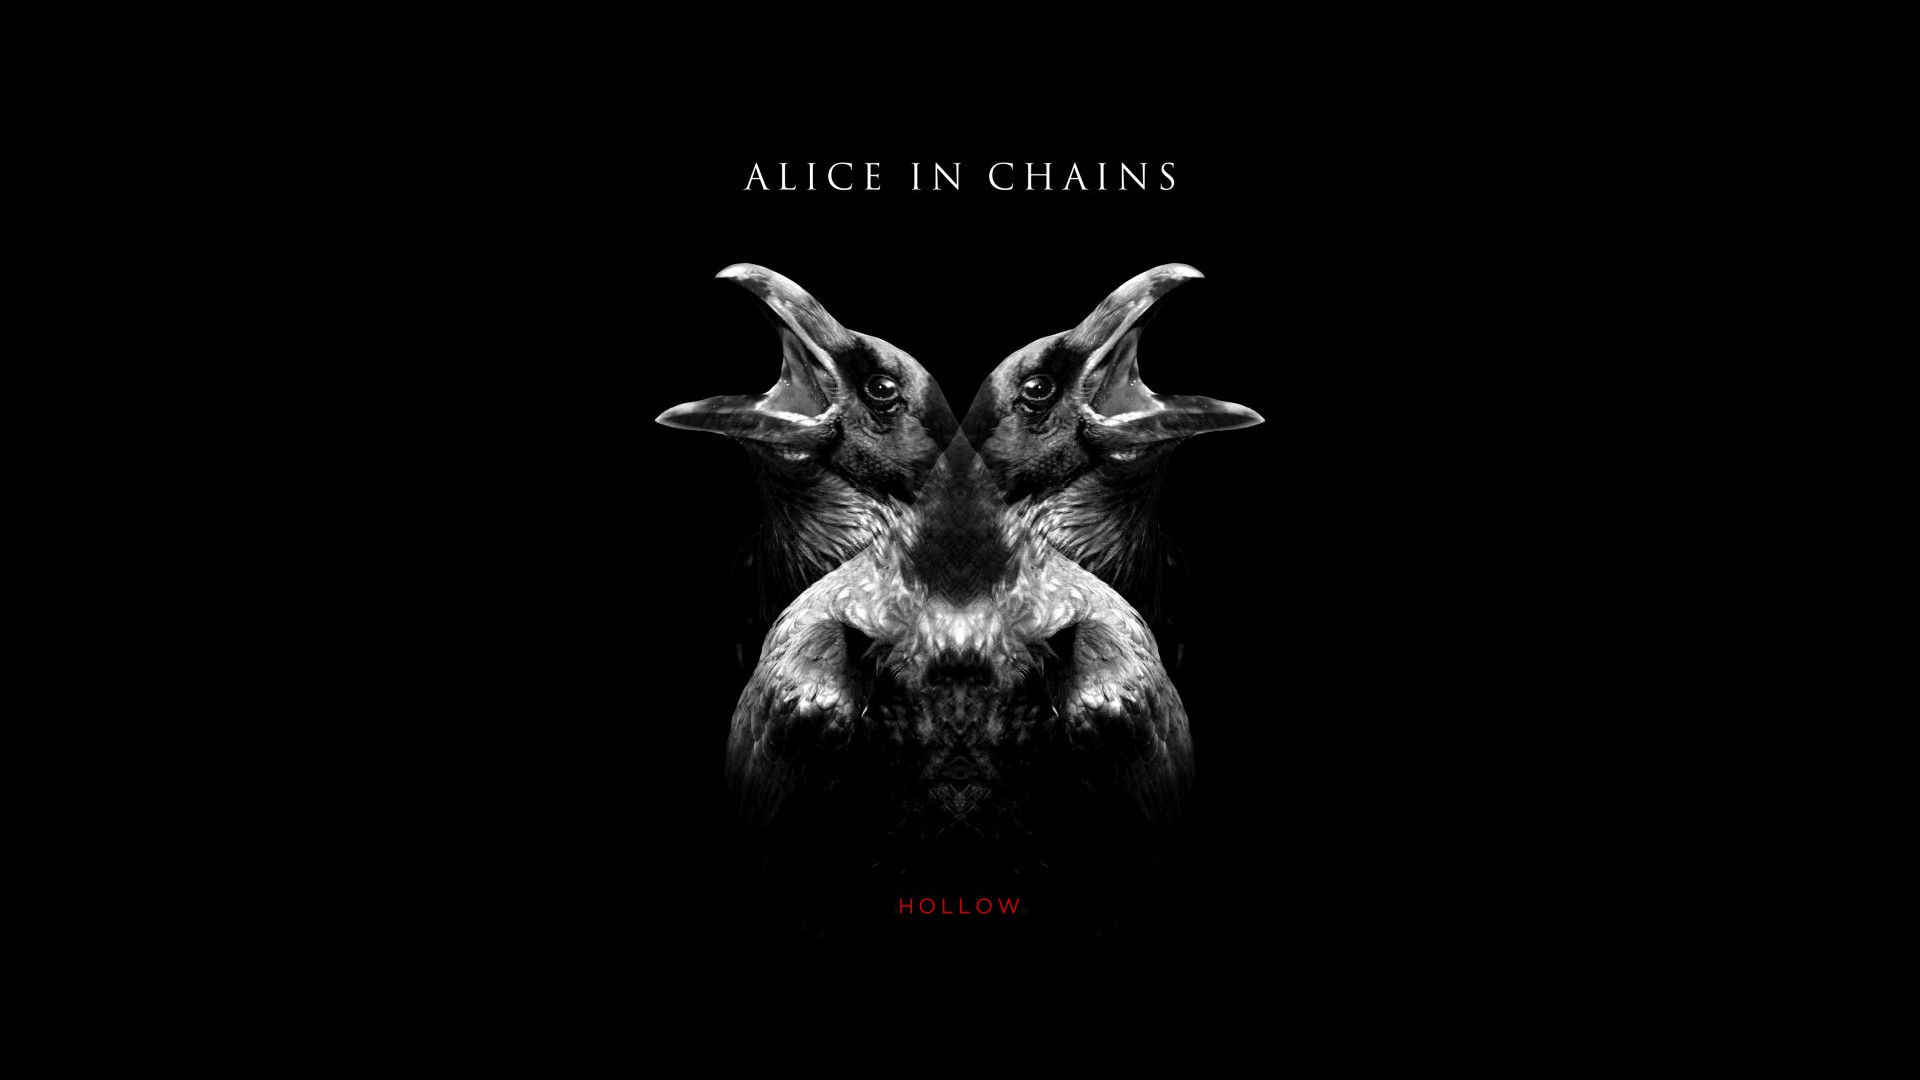 Alice In Chains Hollow Wallpaper by ORANGEMAN80 on DeviantArt